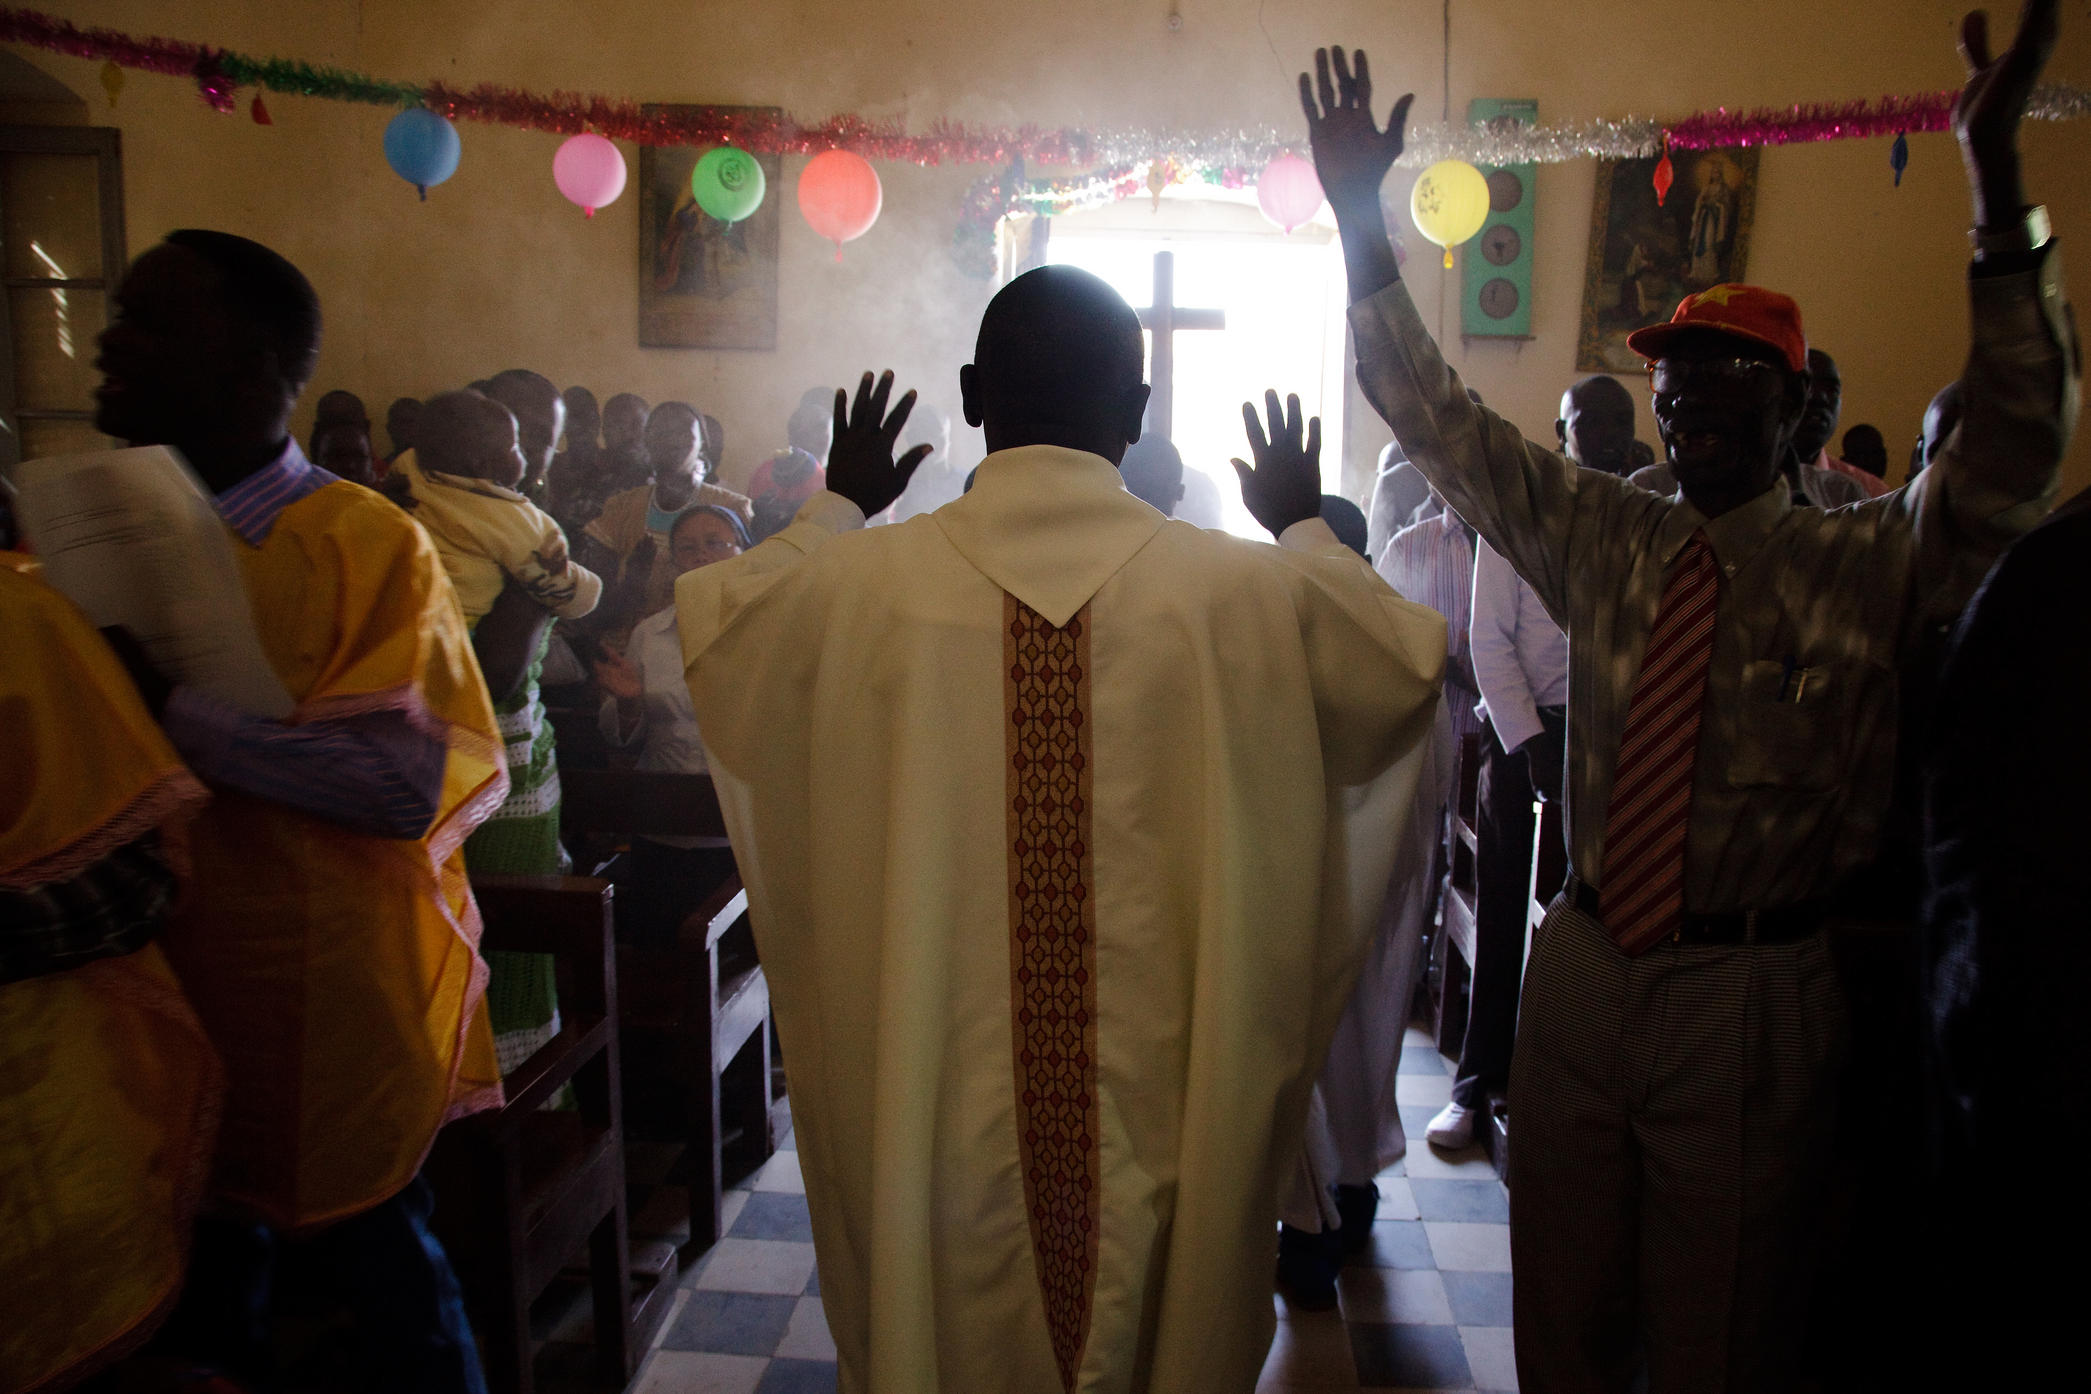 South Sudanese Christians celebrate Christmas mass at El Fasher church in North Darfur. Many in their community have recently left Darfur. According to the UN High Commissioner for Refugees (UNHCR), over 55,000 displaced Southern Sudanese have returned home over the past few weeks, ahead of the region's referendum on independence.